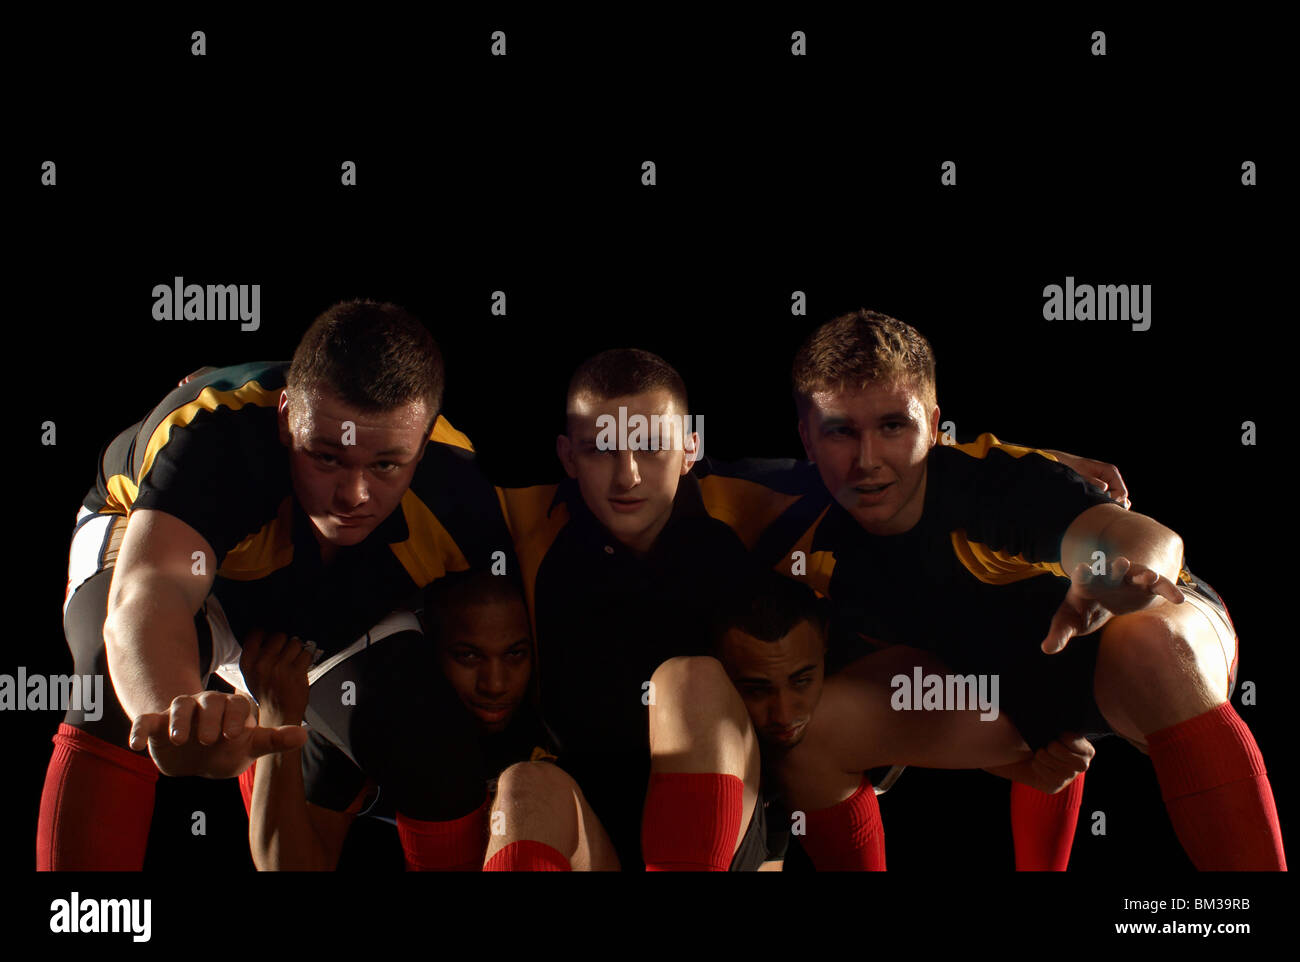 Rugby Players In Scrum Formation Stock Photo Alamy